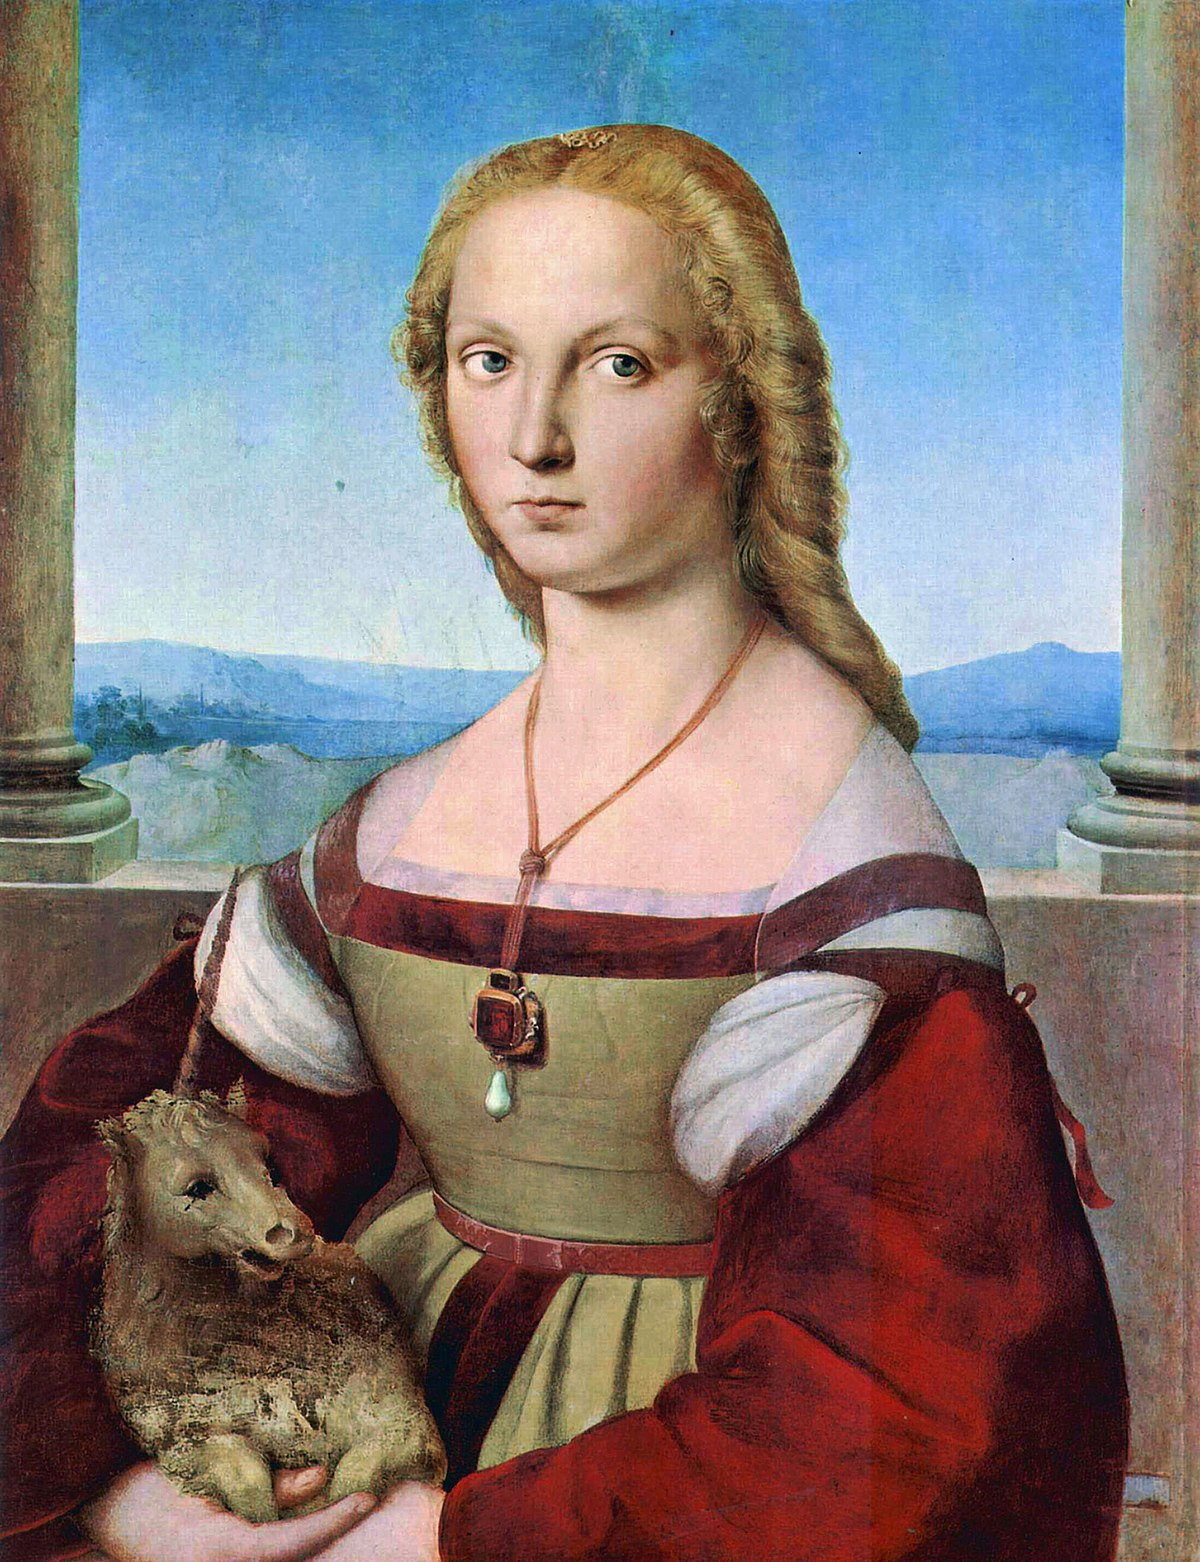 Raphael,  Portrait of Young Woman with Unicorn  (c. 1505-1506)